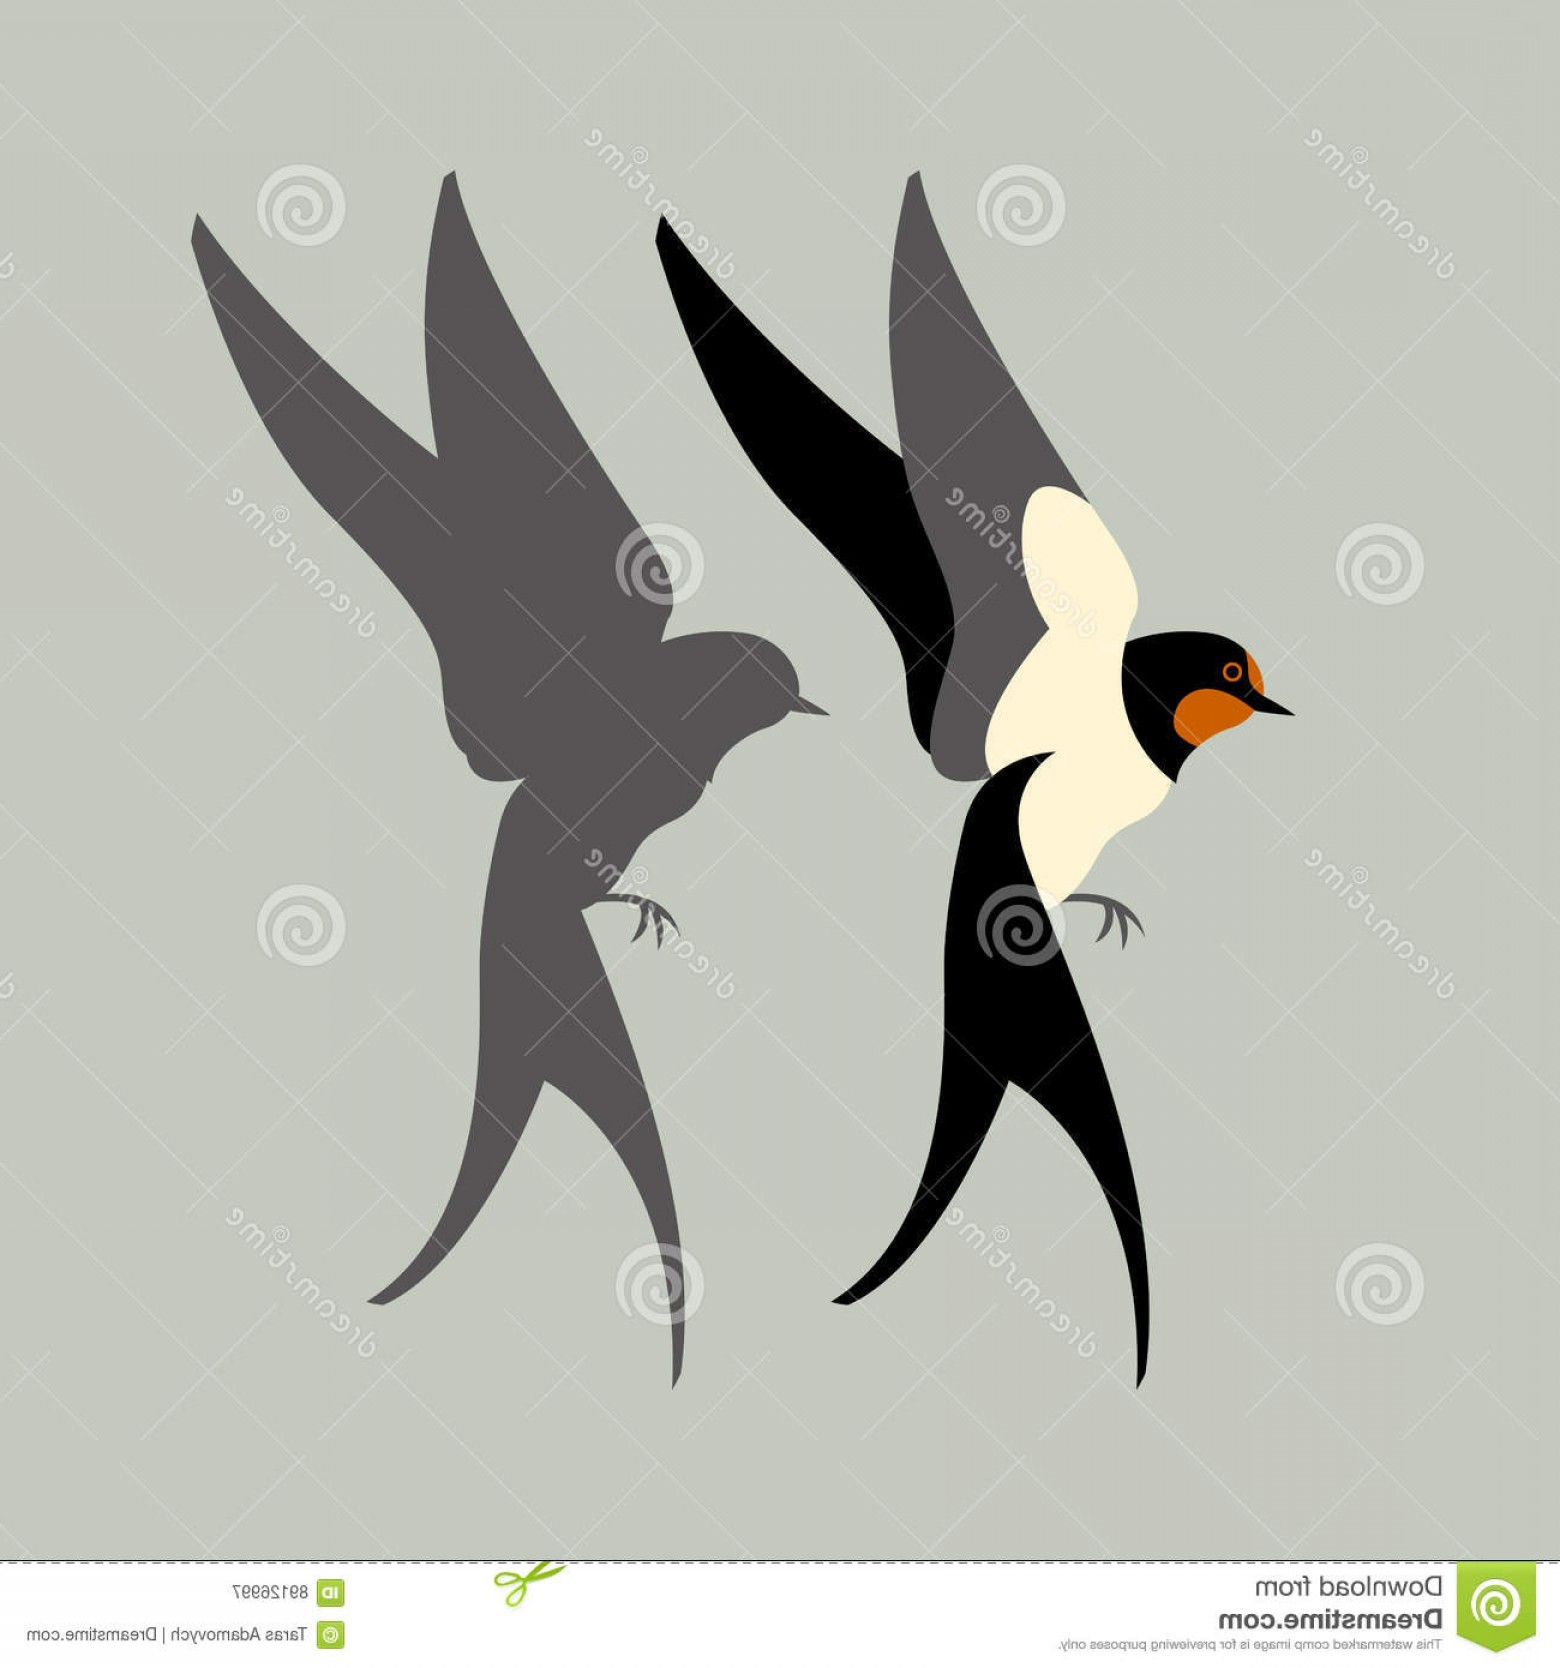 Swallow Vector: Stock Illustration Swallow Vector Illustration Style Flat Set Black Silhouette Image